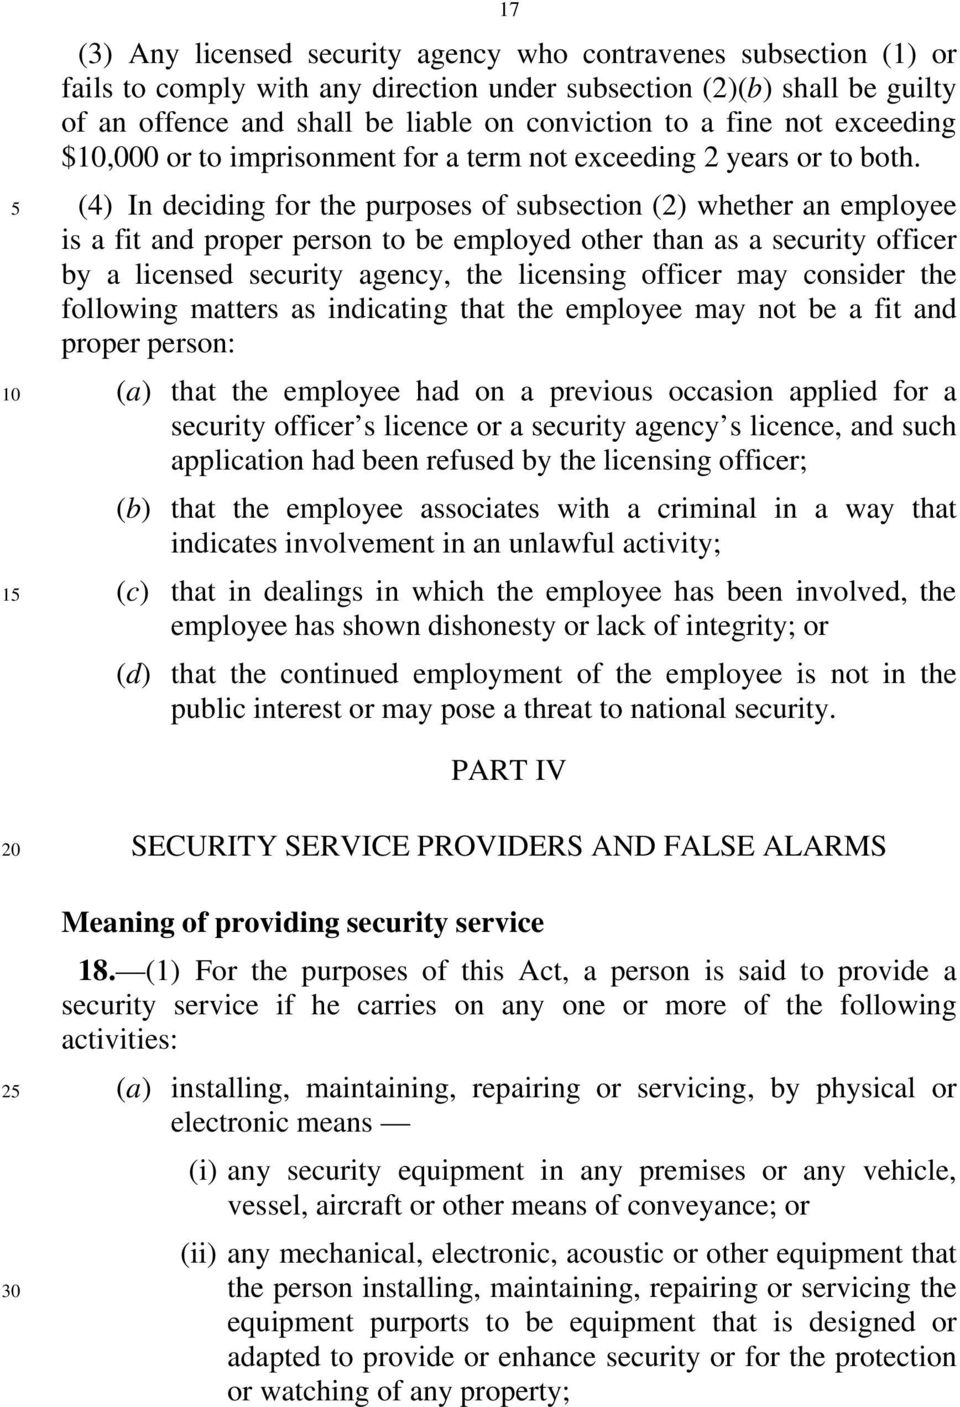 (4) In deciding for the purposes of subsection (2) whether an employee is a fit and proper person to be employed other than as a security officer by a licensed security agency, the licensing officer